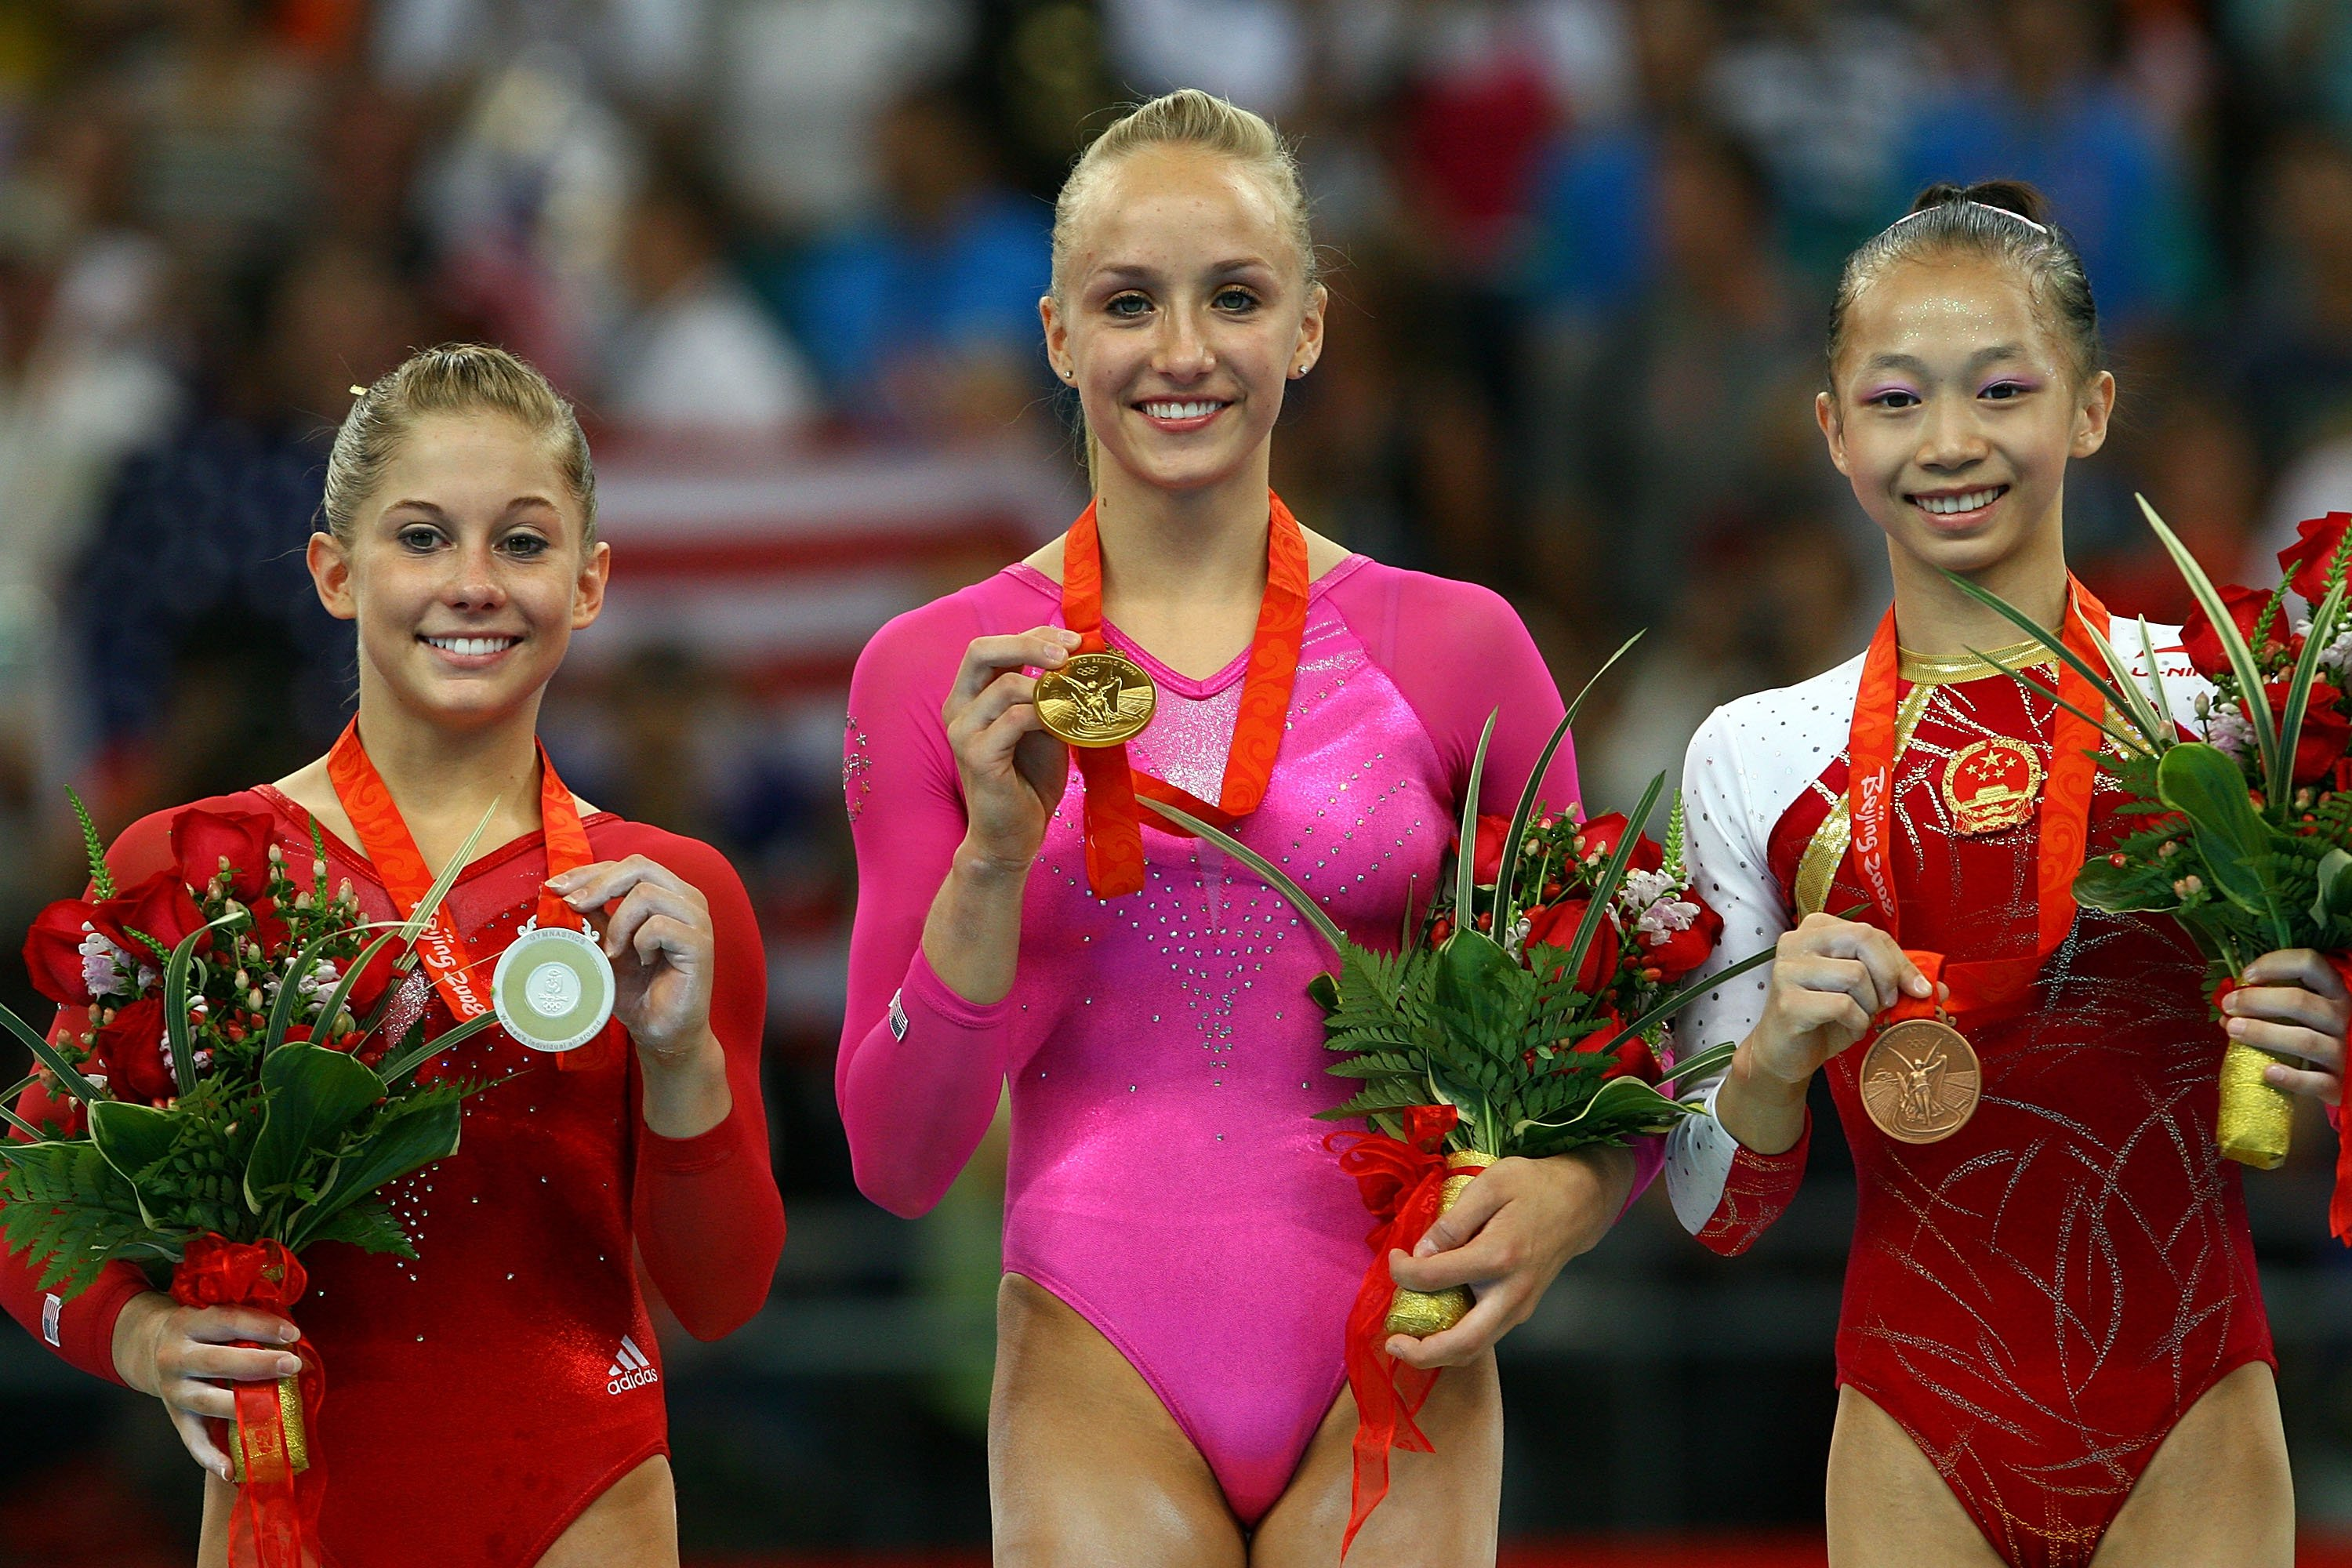 (L-R) Silver medalist Shawn Johnson of the United States, gold medalist Nastia Liukin of the United States and bronze medalist Yang Yillin of China pose together on the podium after competing in the women's individual all-around artistic gymnastics final at the National Indoor Stadium on Day 7 of the Beijing 2008 Olympic Games on August 15, 2008 in Beijing, China   Photo: Getty Images